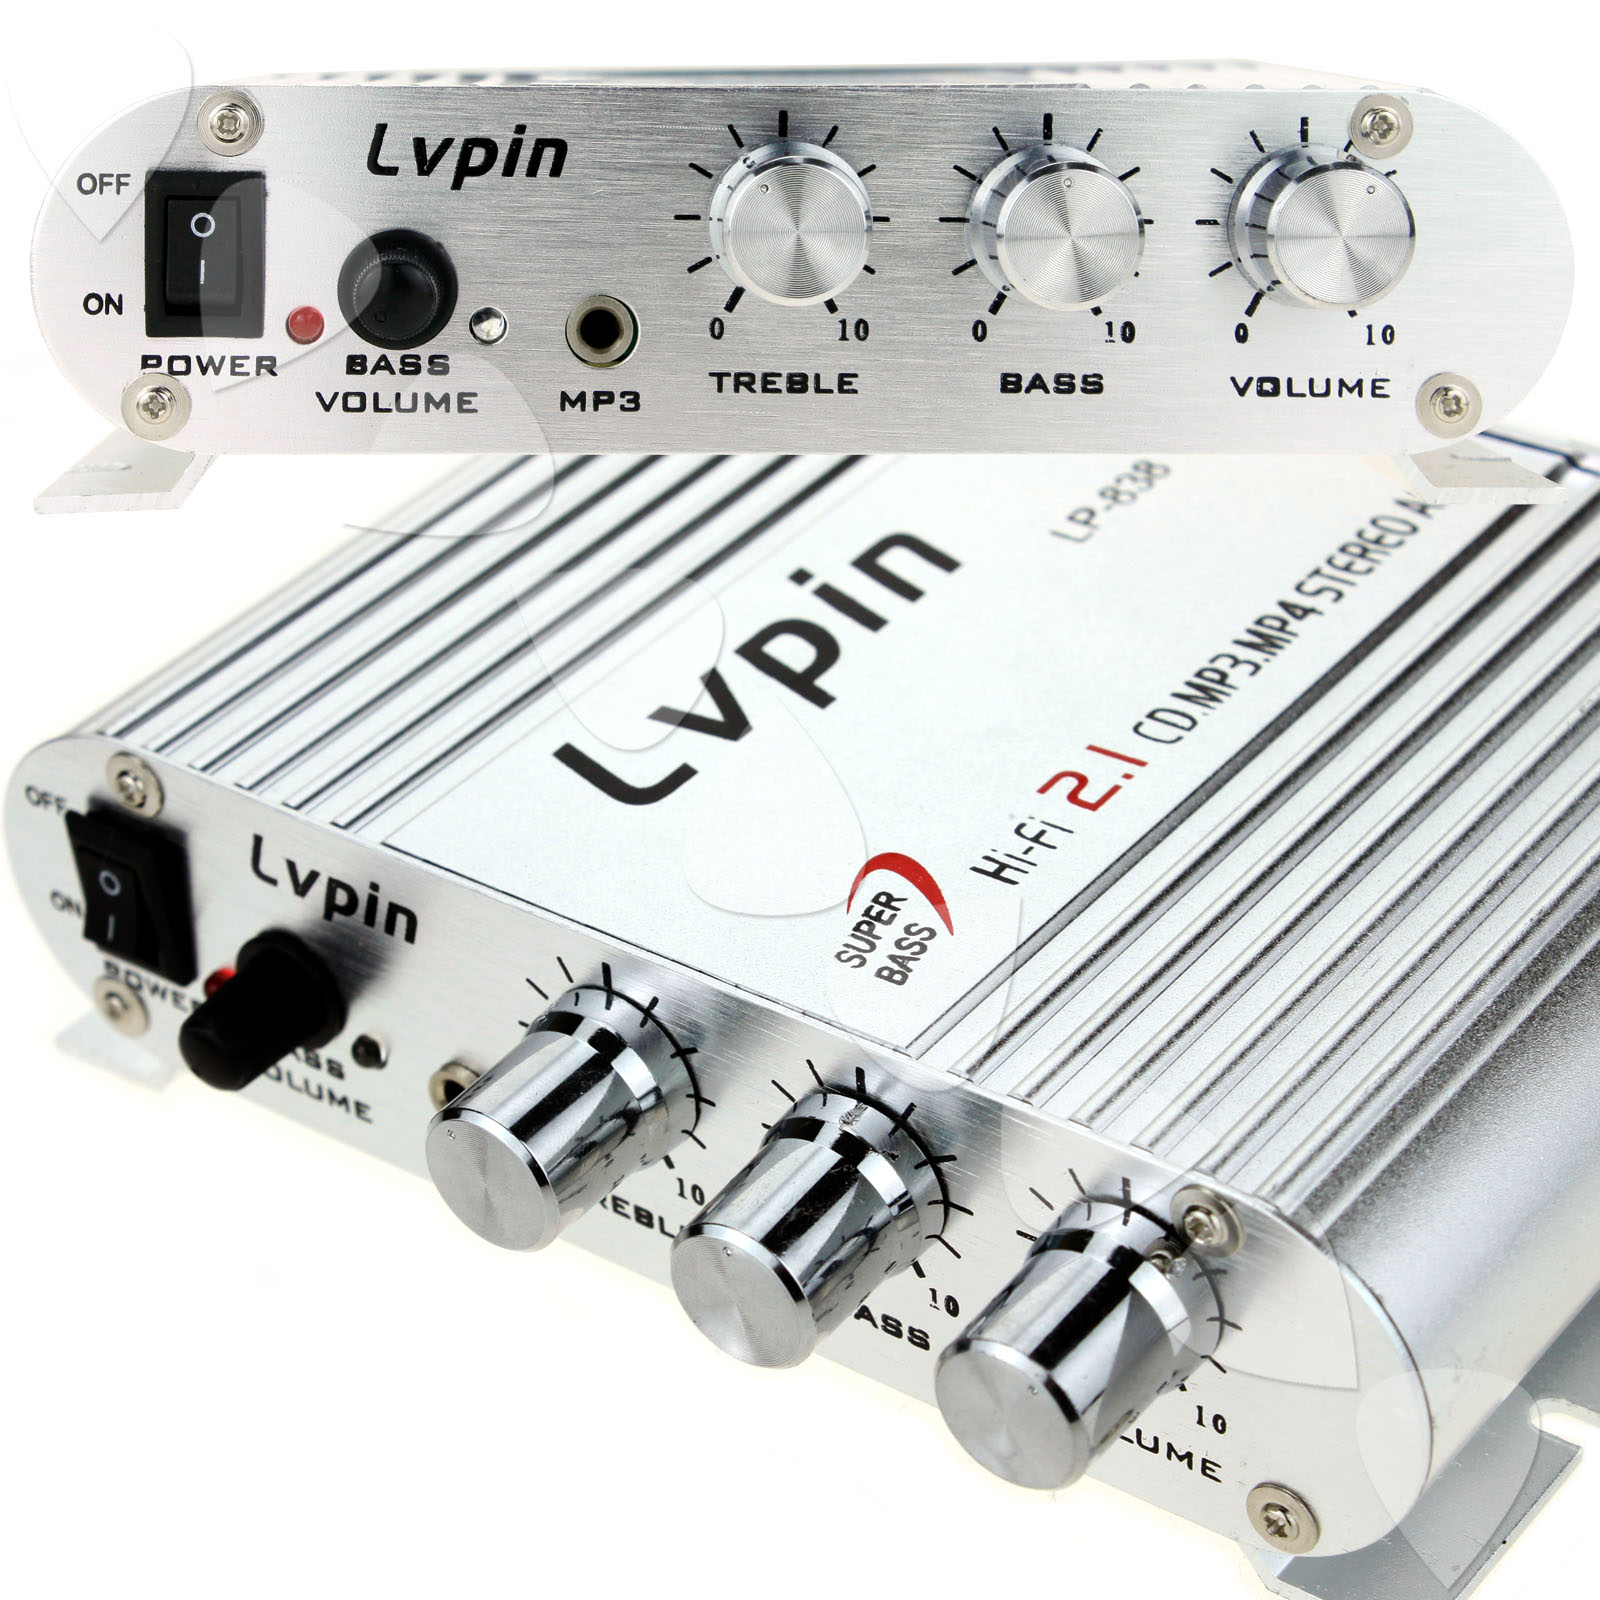 12v Mini Hifi Audio Stereo Super Bass Amplifier Amp For Car Motorcycle Boat